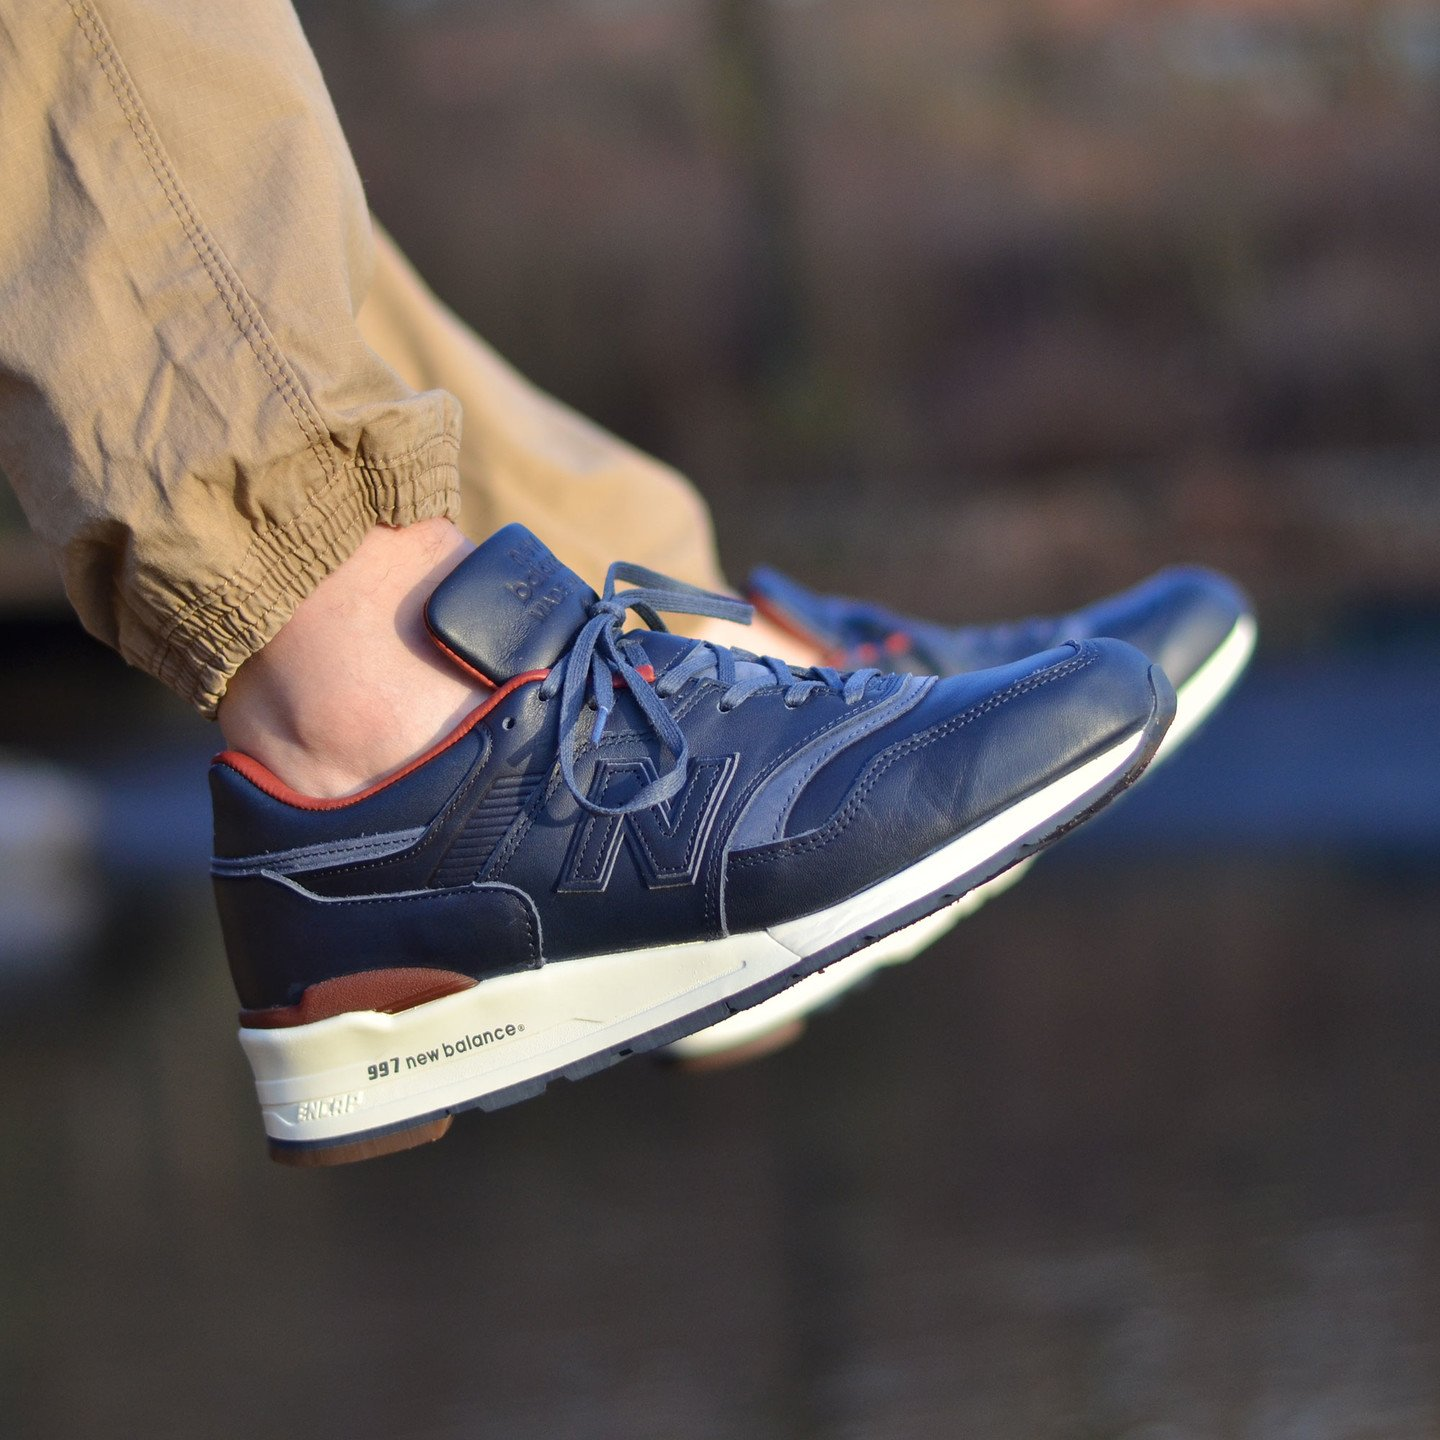 New Balance M997 Made in USA - Horween Leather Dark Blue / Burgundy M997BEXP-42